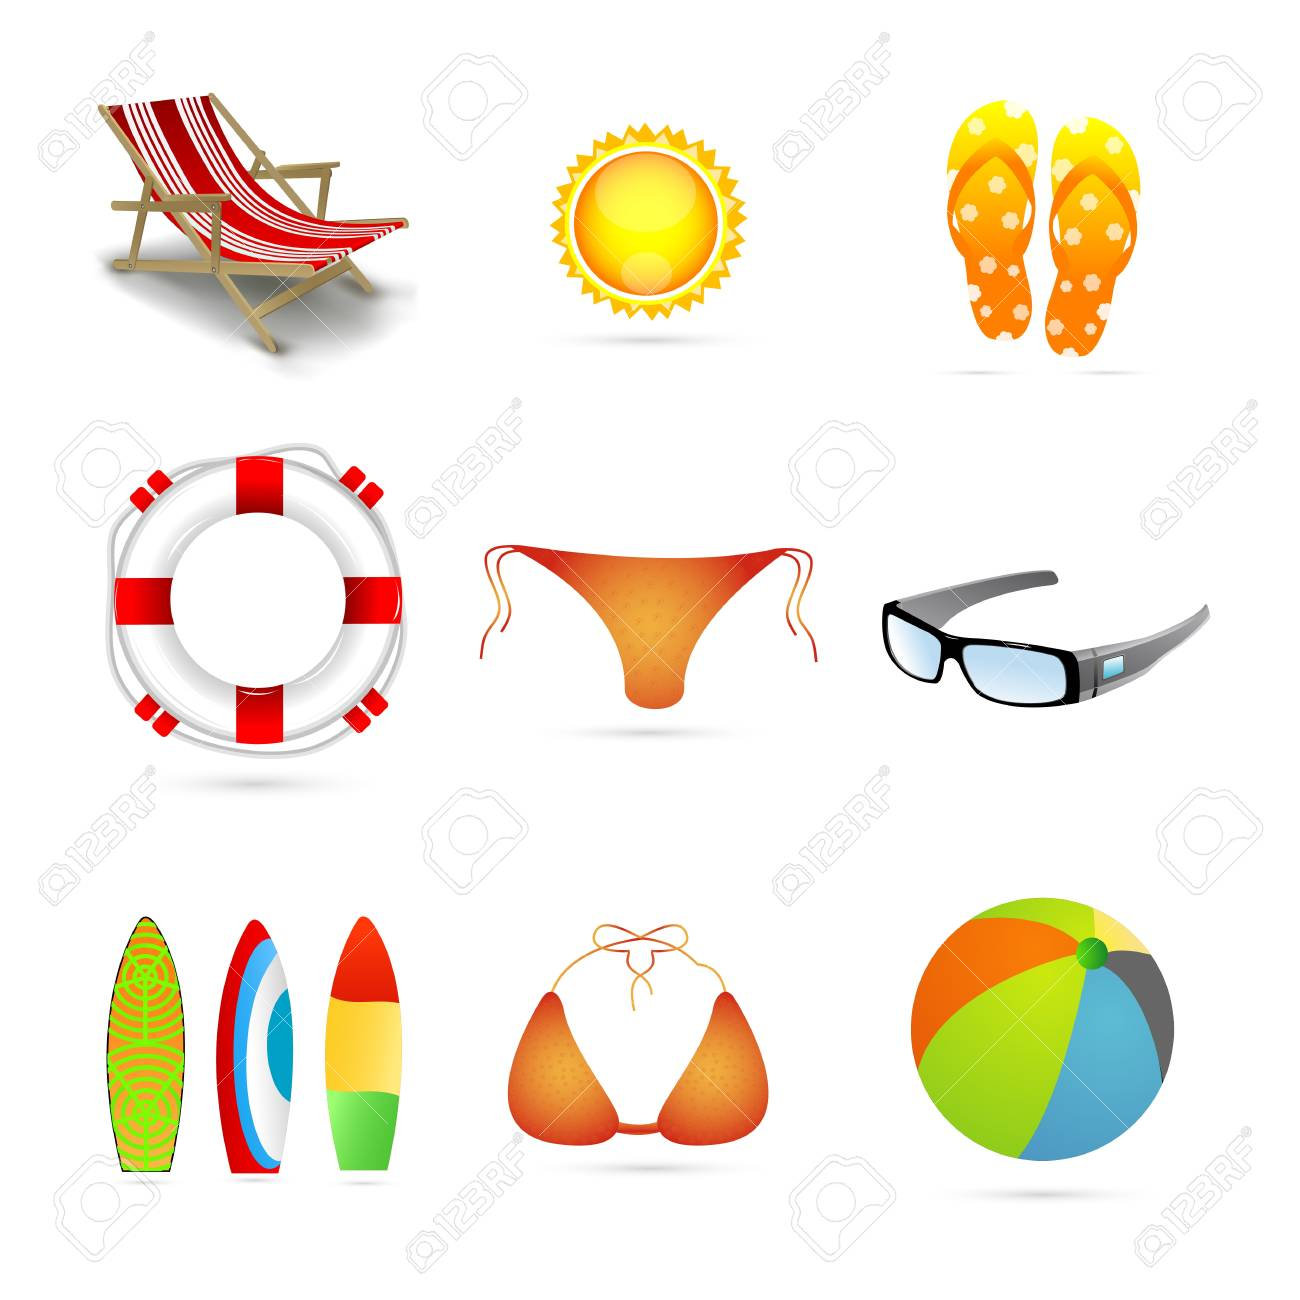 illustration of beach icons on isolated background Stock Vector - 8552863